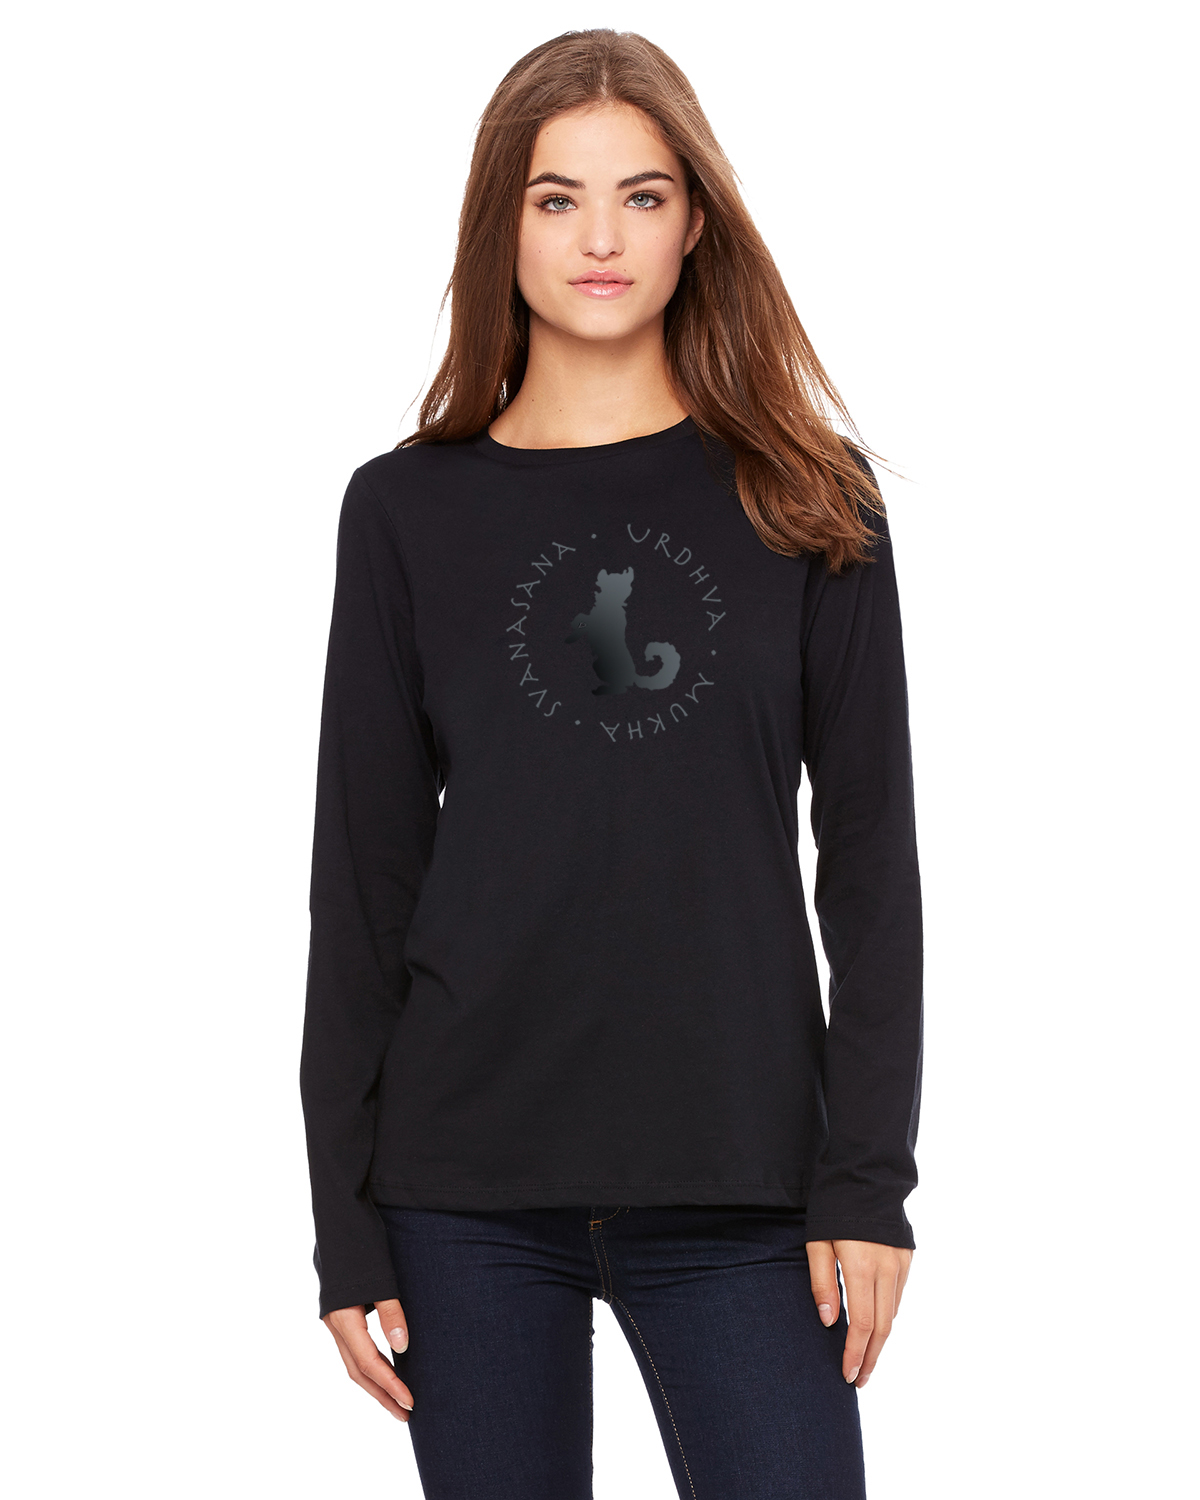 Women's long sleeve Up Dog Yoga T-Shirt (Black)